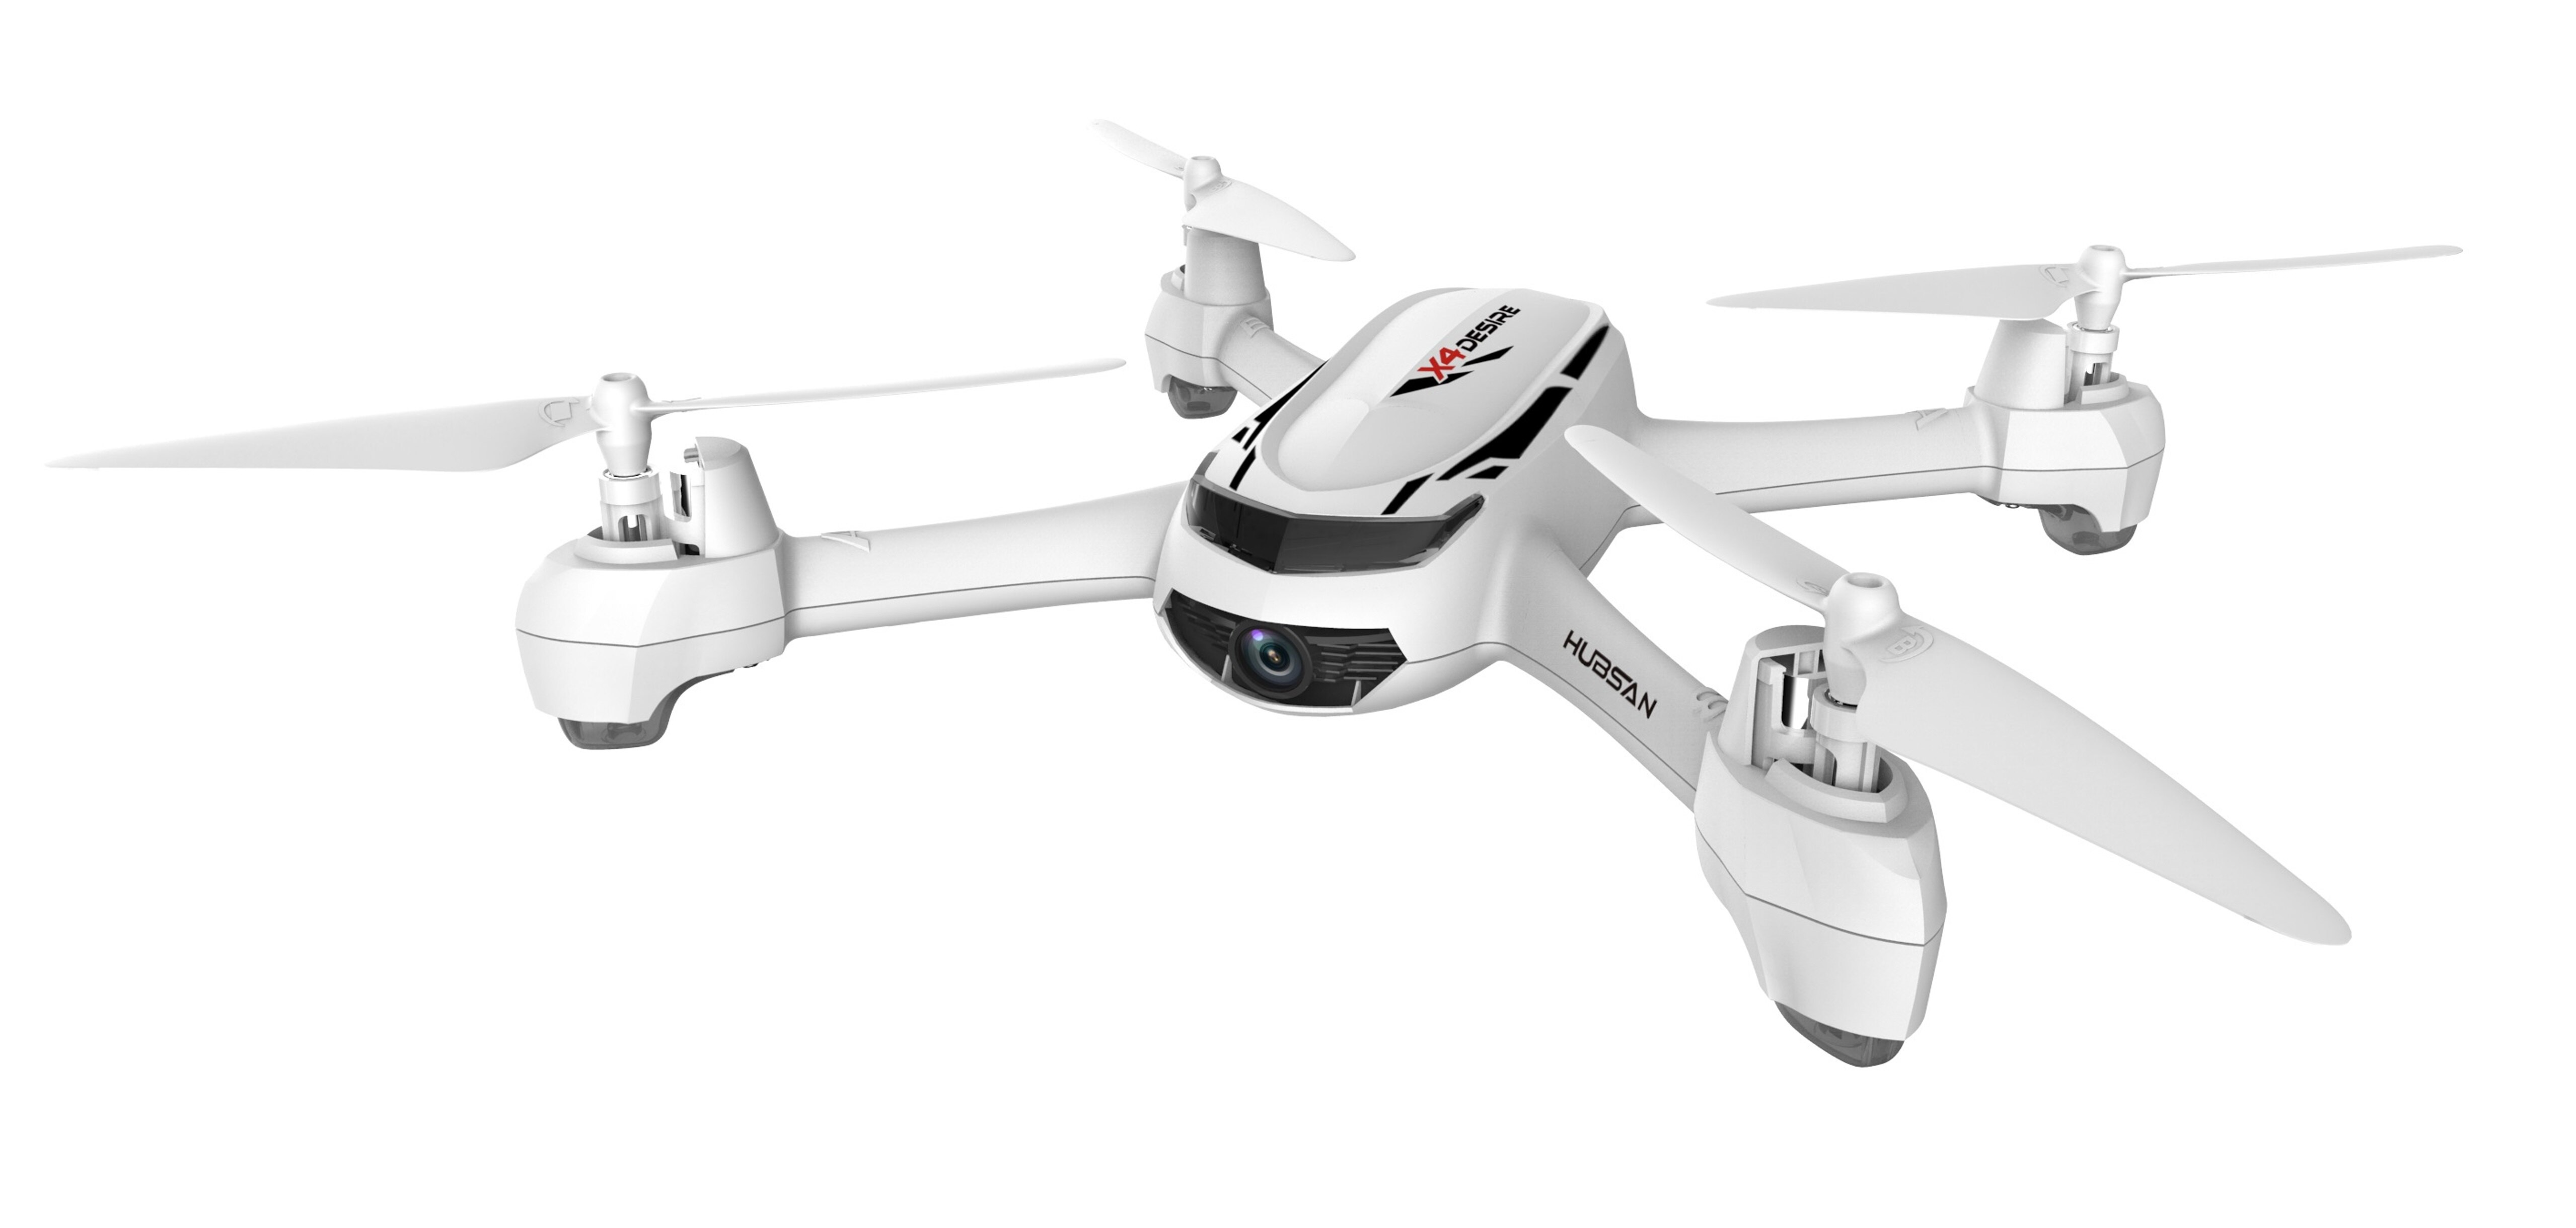 Hubsan X4 H502S FPV Real-time 5.8G GPS RC Quadcopter w/720P Camera Drone White 1